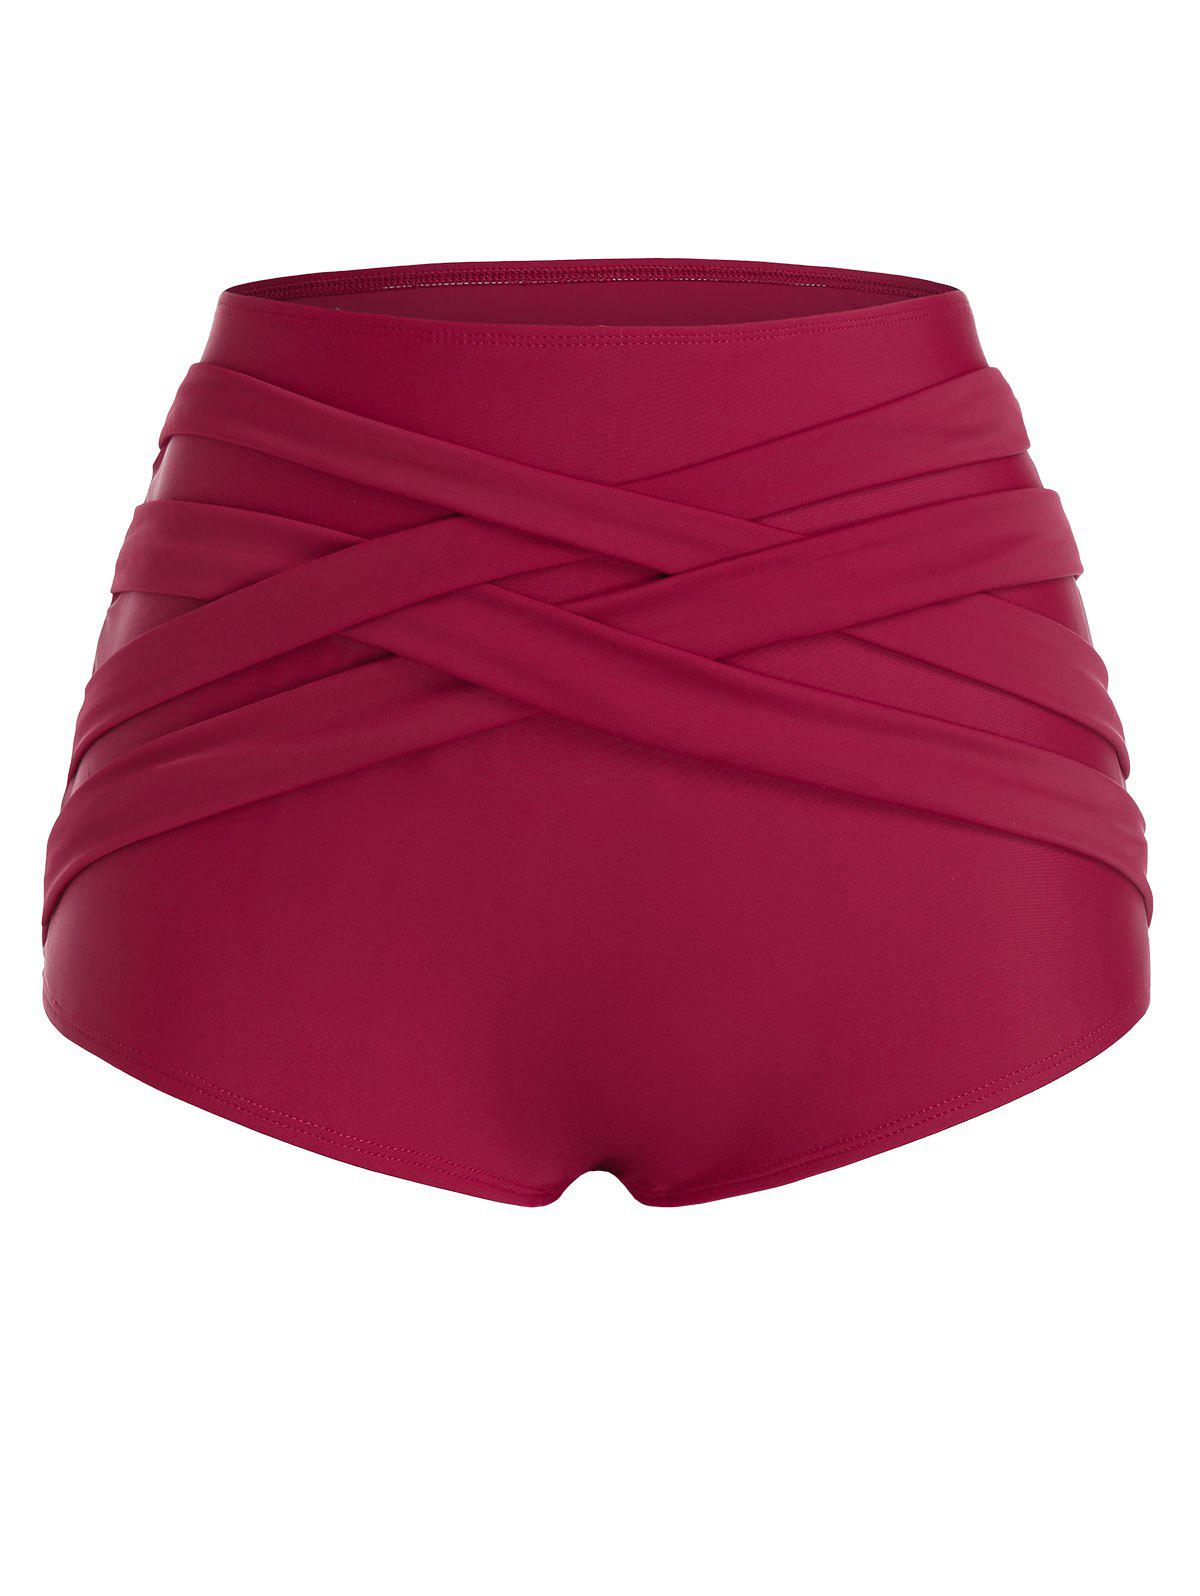 Plus Size High Rise Crossover Swim Bottom - RED WINE 4X